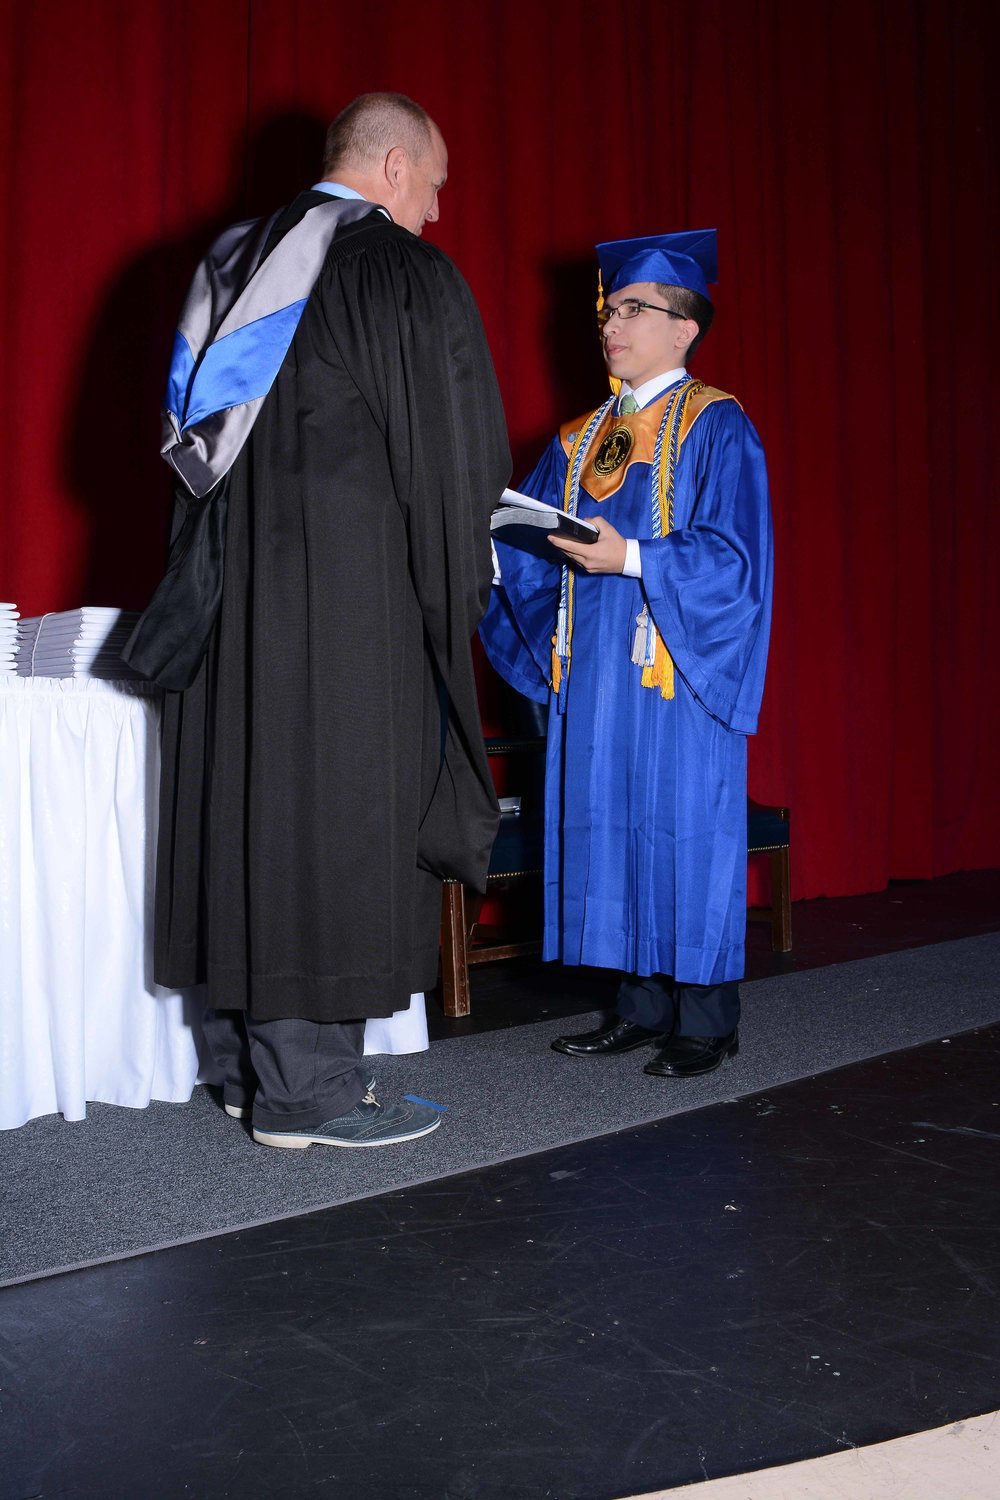 May14 Commencement42.jpg